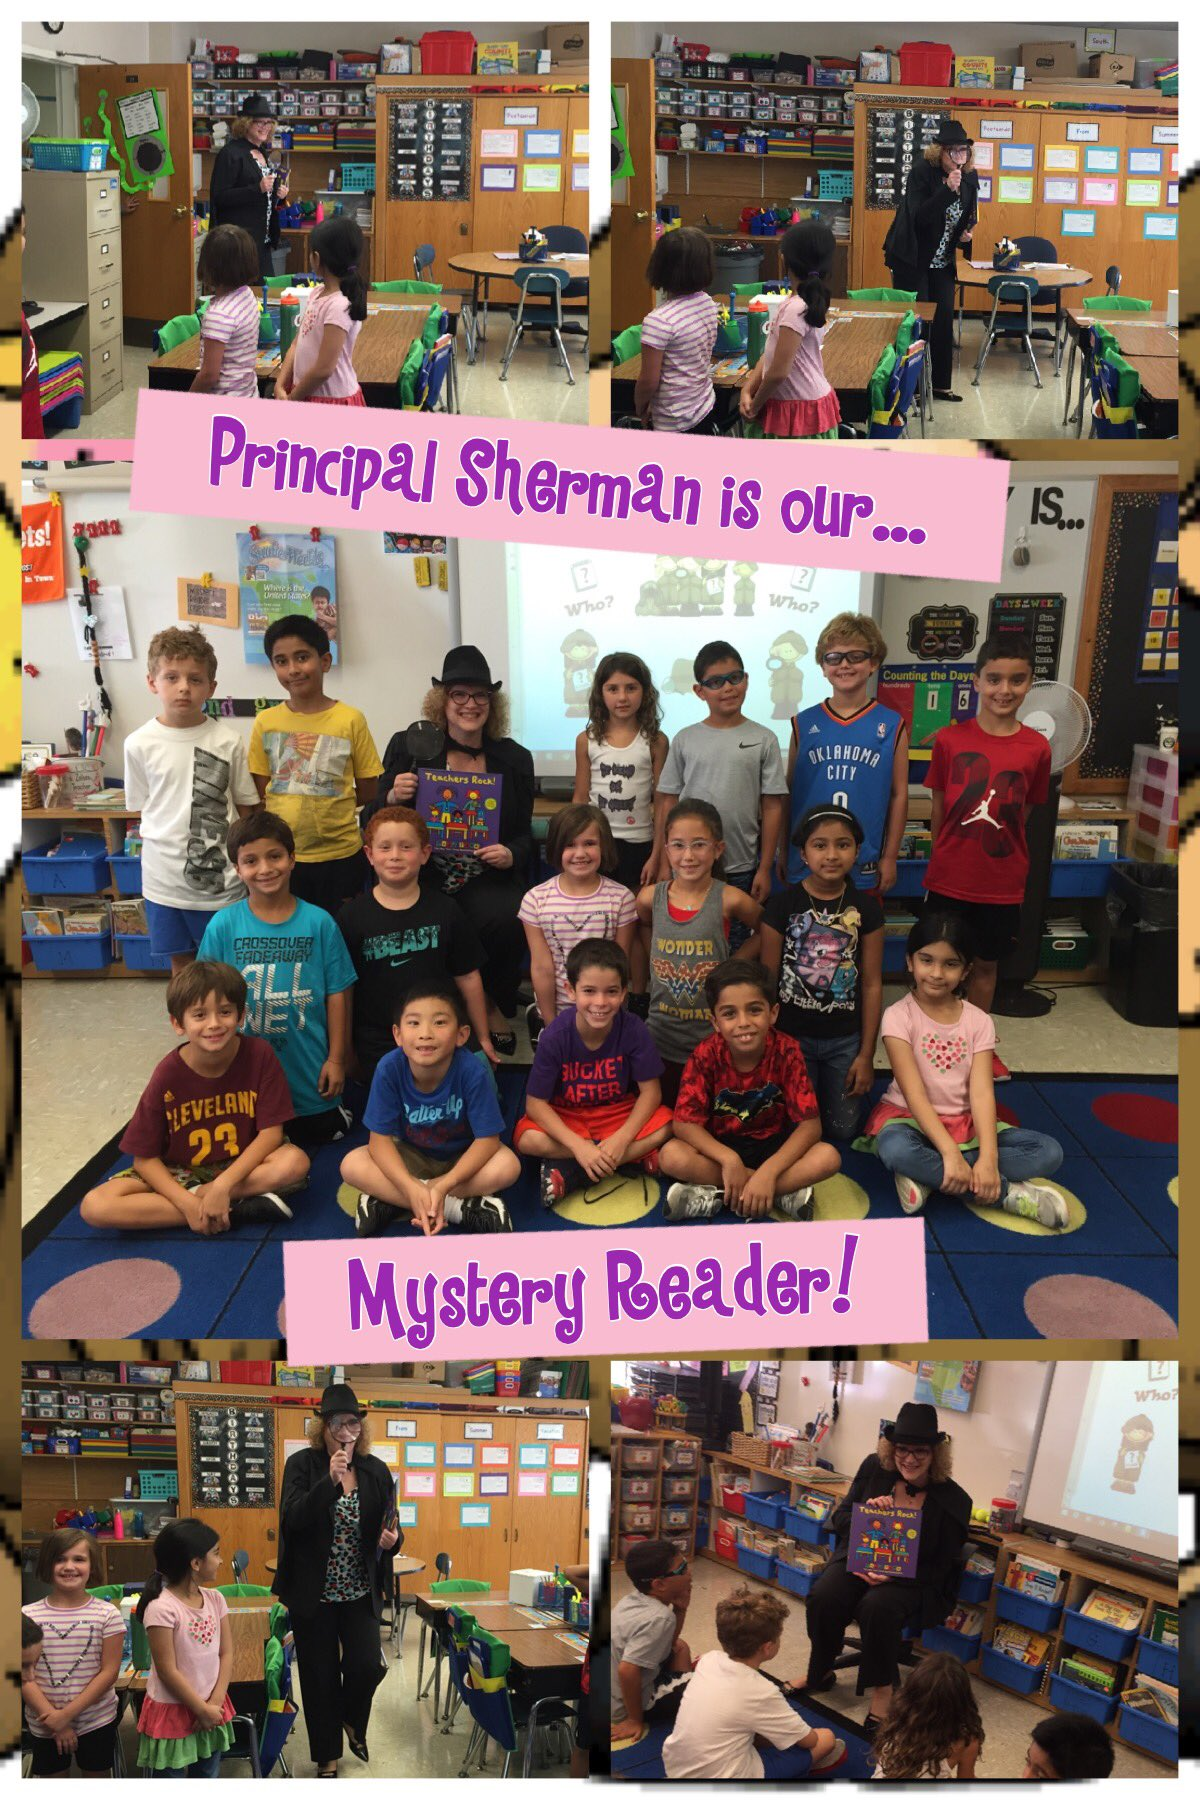 Ss were so excited over @Ivysherman being their 1st Mystery Reader📖 #2ZC @AcohenAllie @JerichoUFSD #seamanstrength https://t.co/Aa5aynDlBc